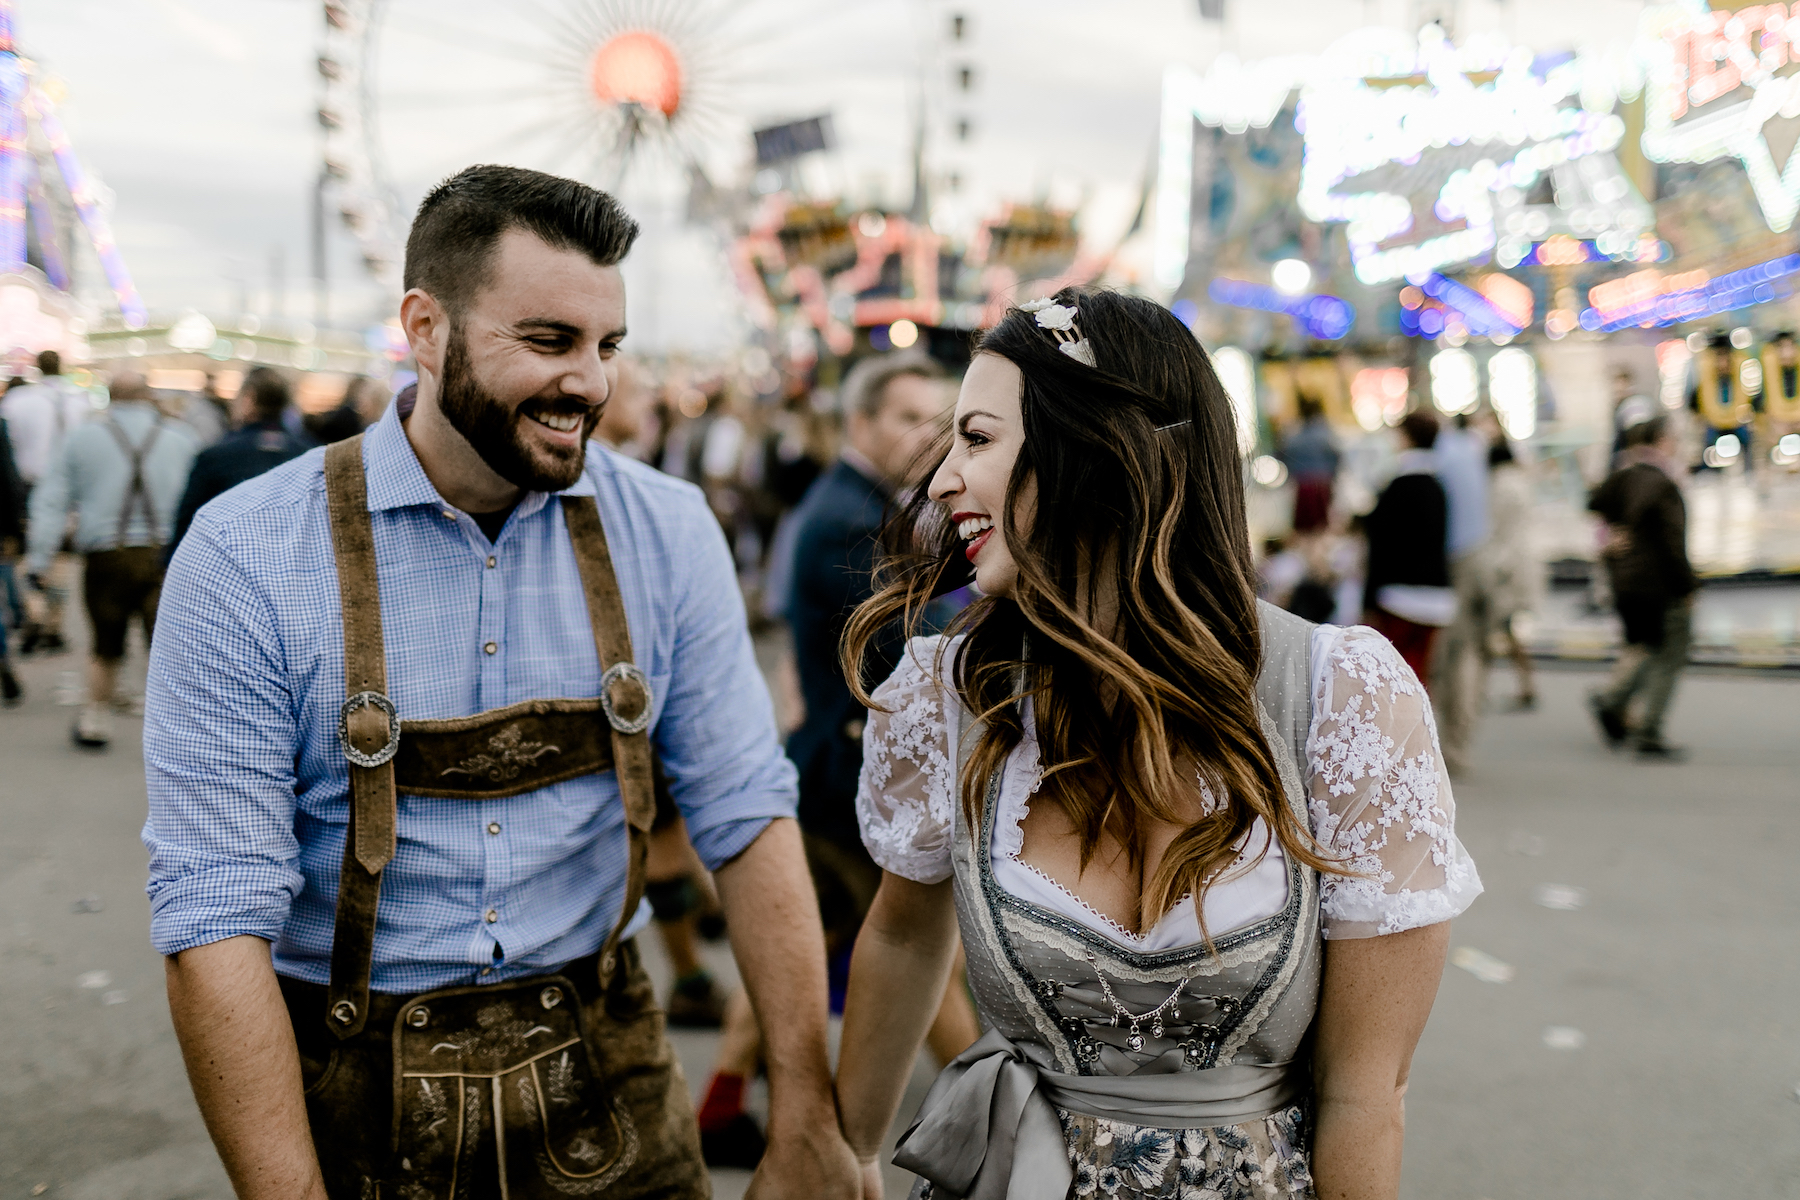 Hacks to Planning Your Trip to Oktoberfest in Munich